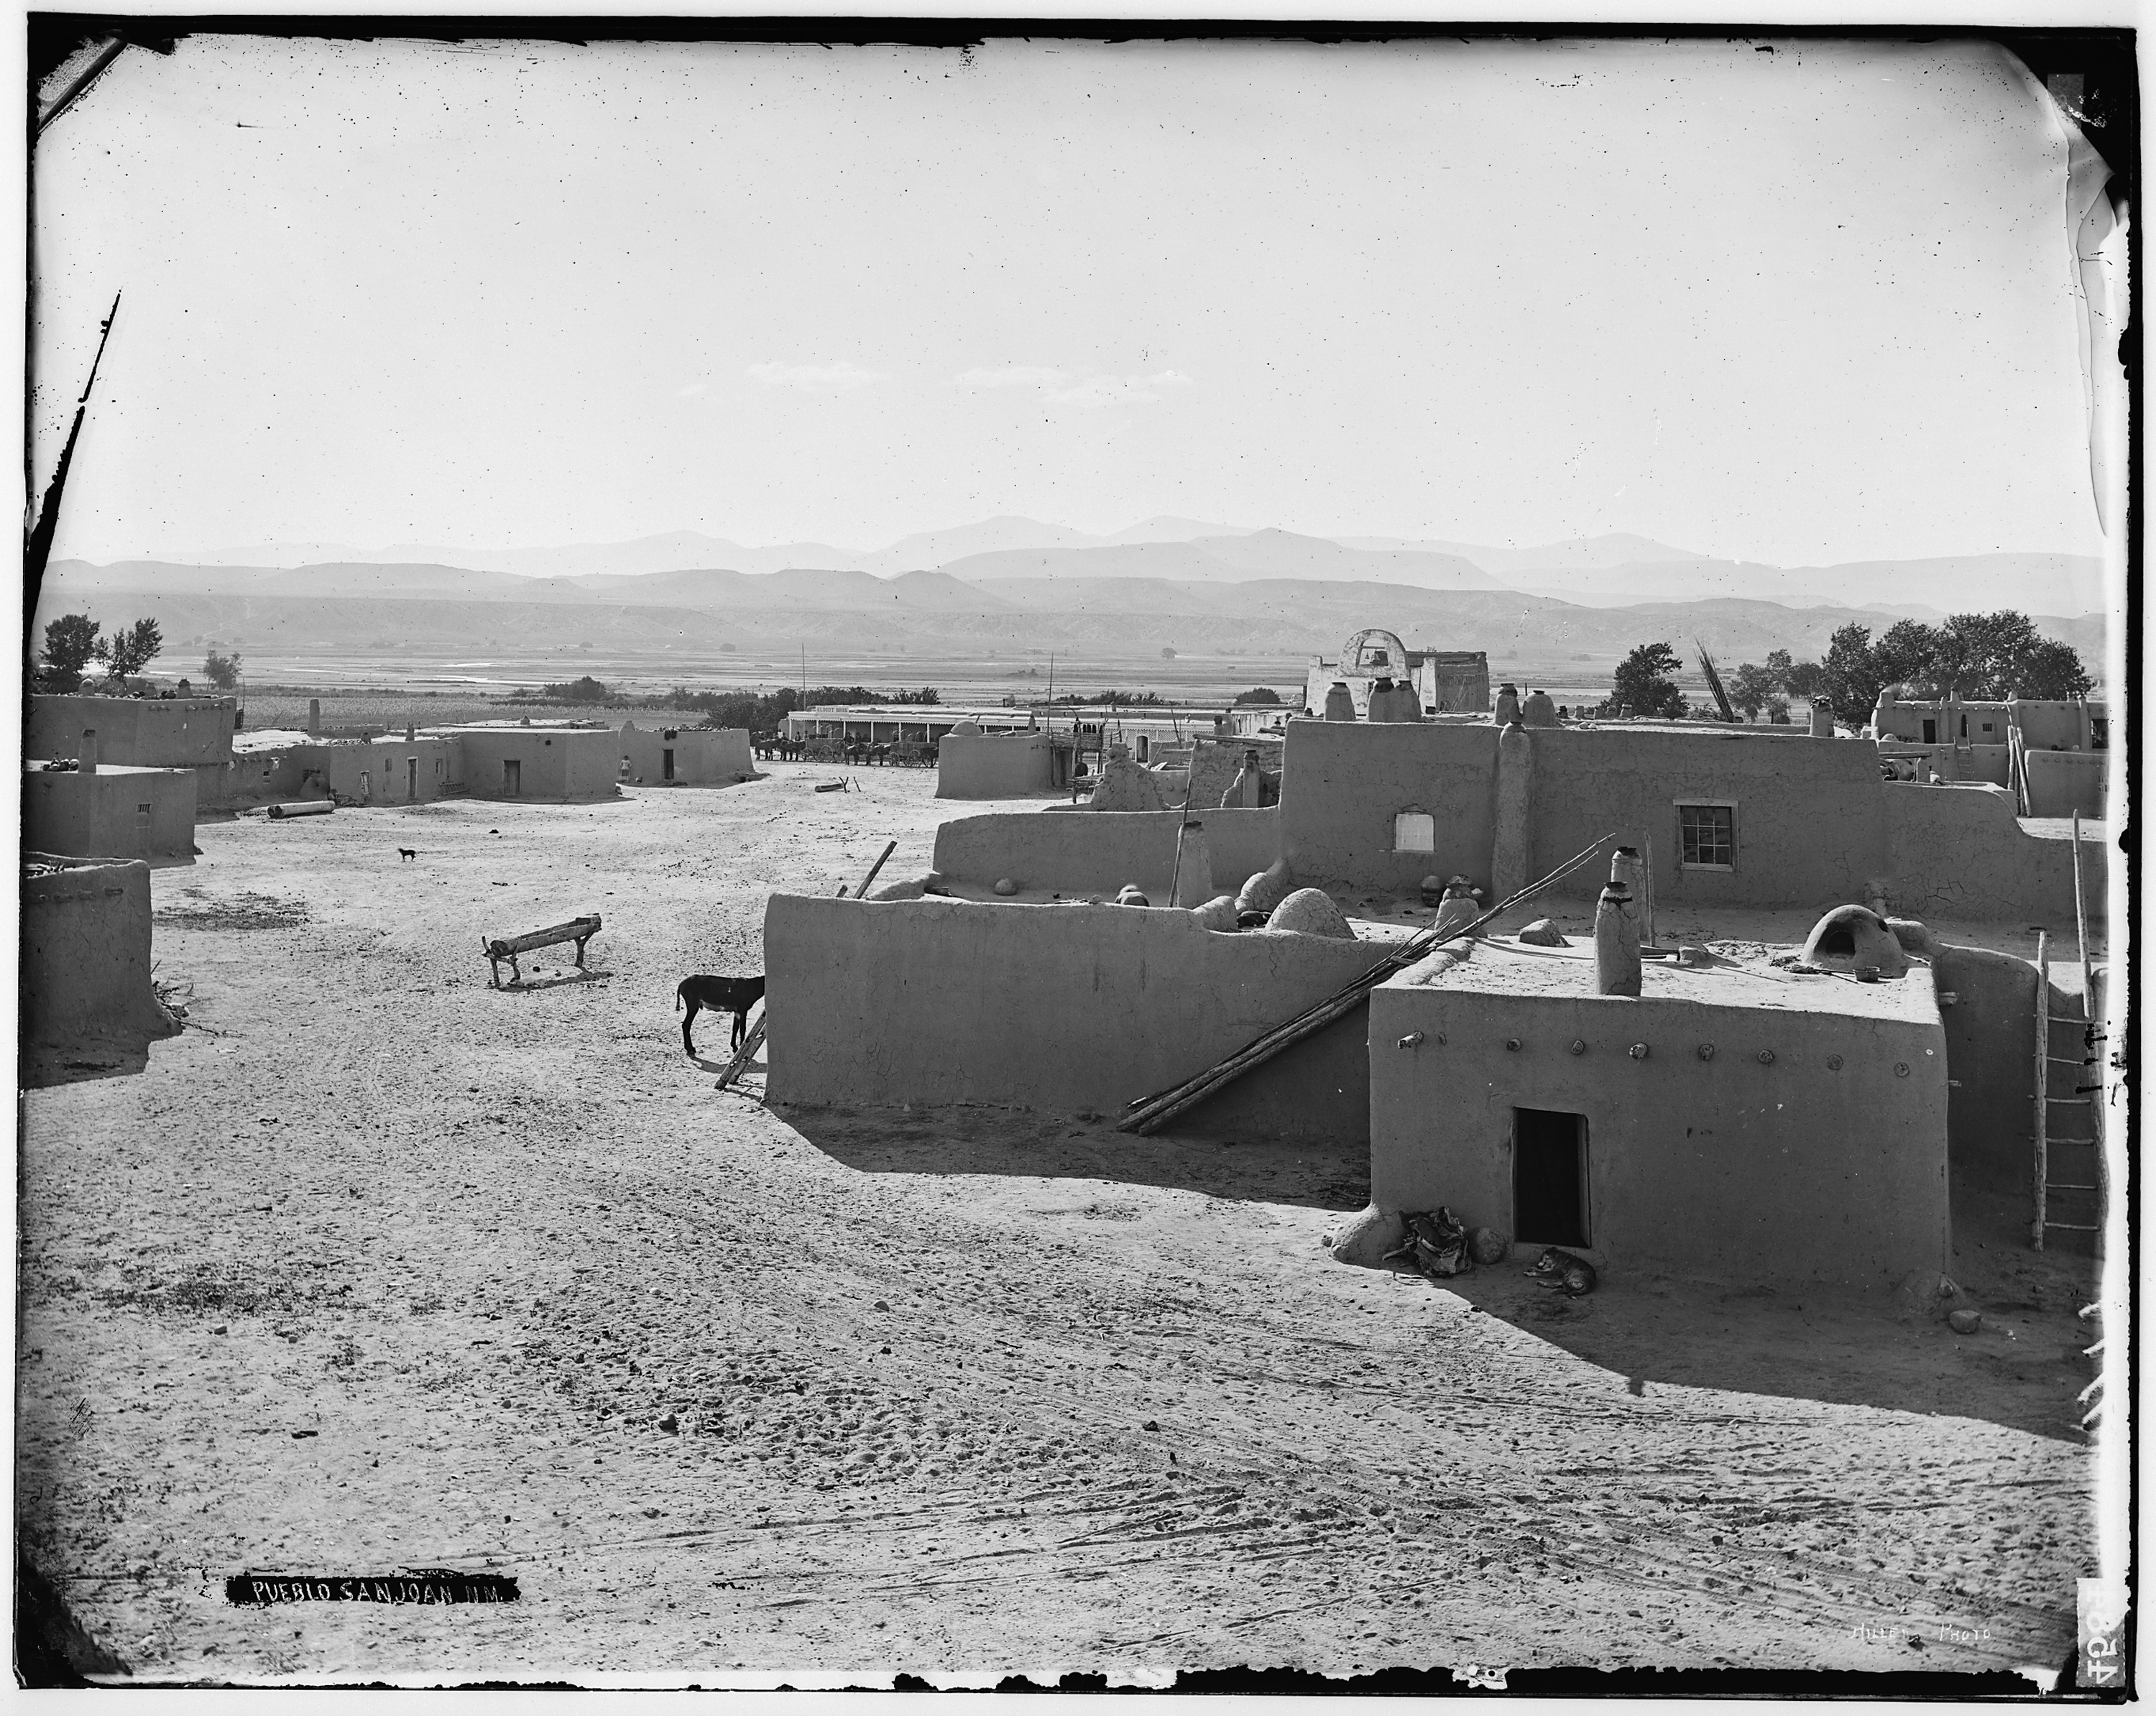 http://upload.wikimedia.org/wikipedia/commons/6/67/Pueblo_in_San_Juan%2C_New_Mexico_-_NARA_-_523750.jpg